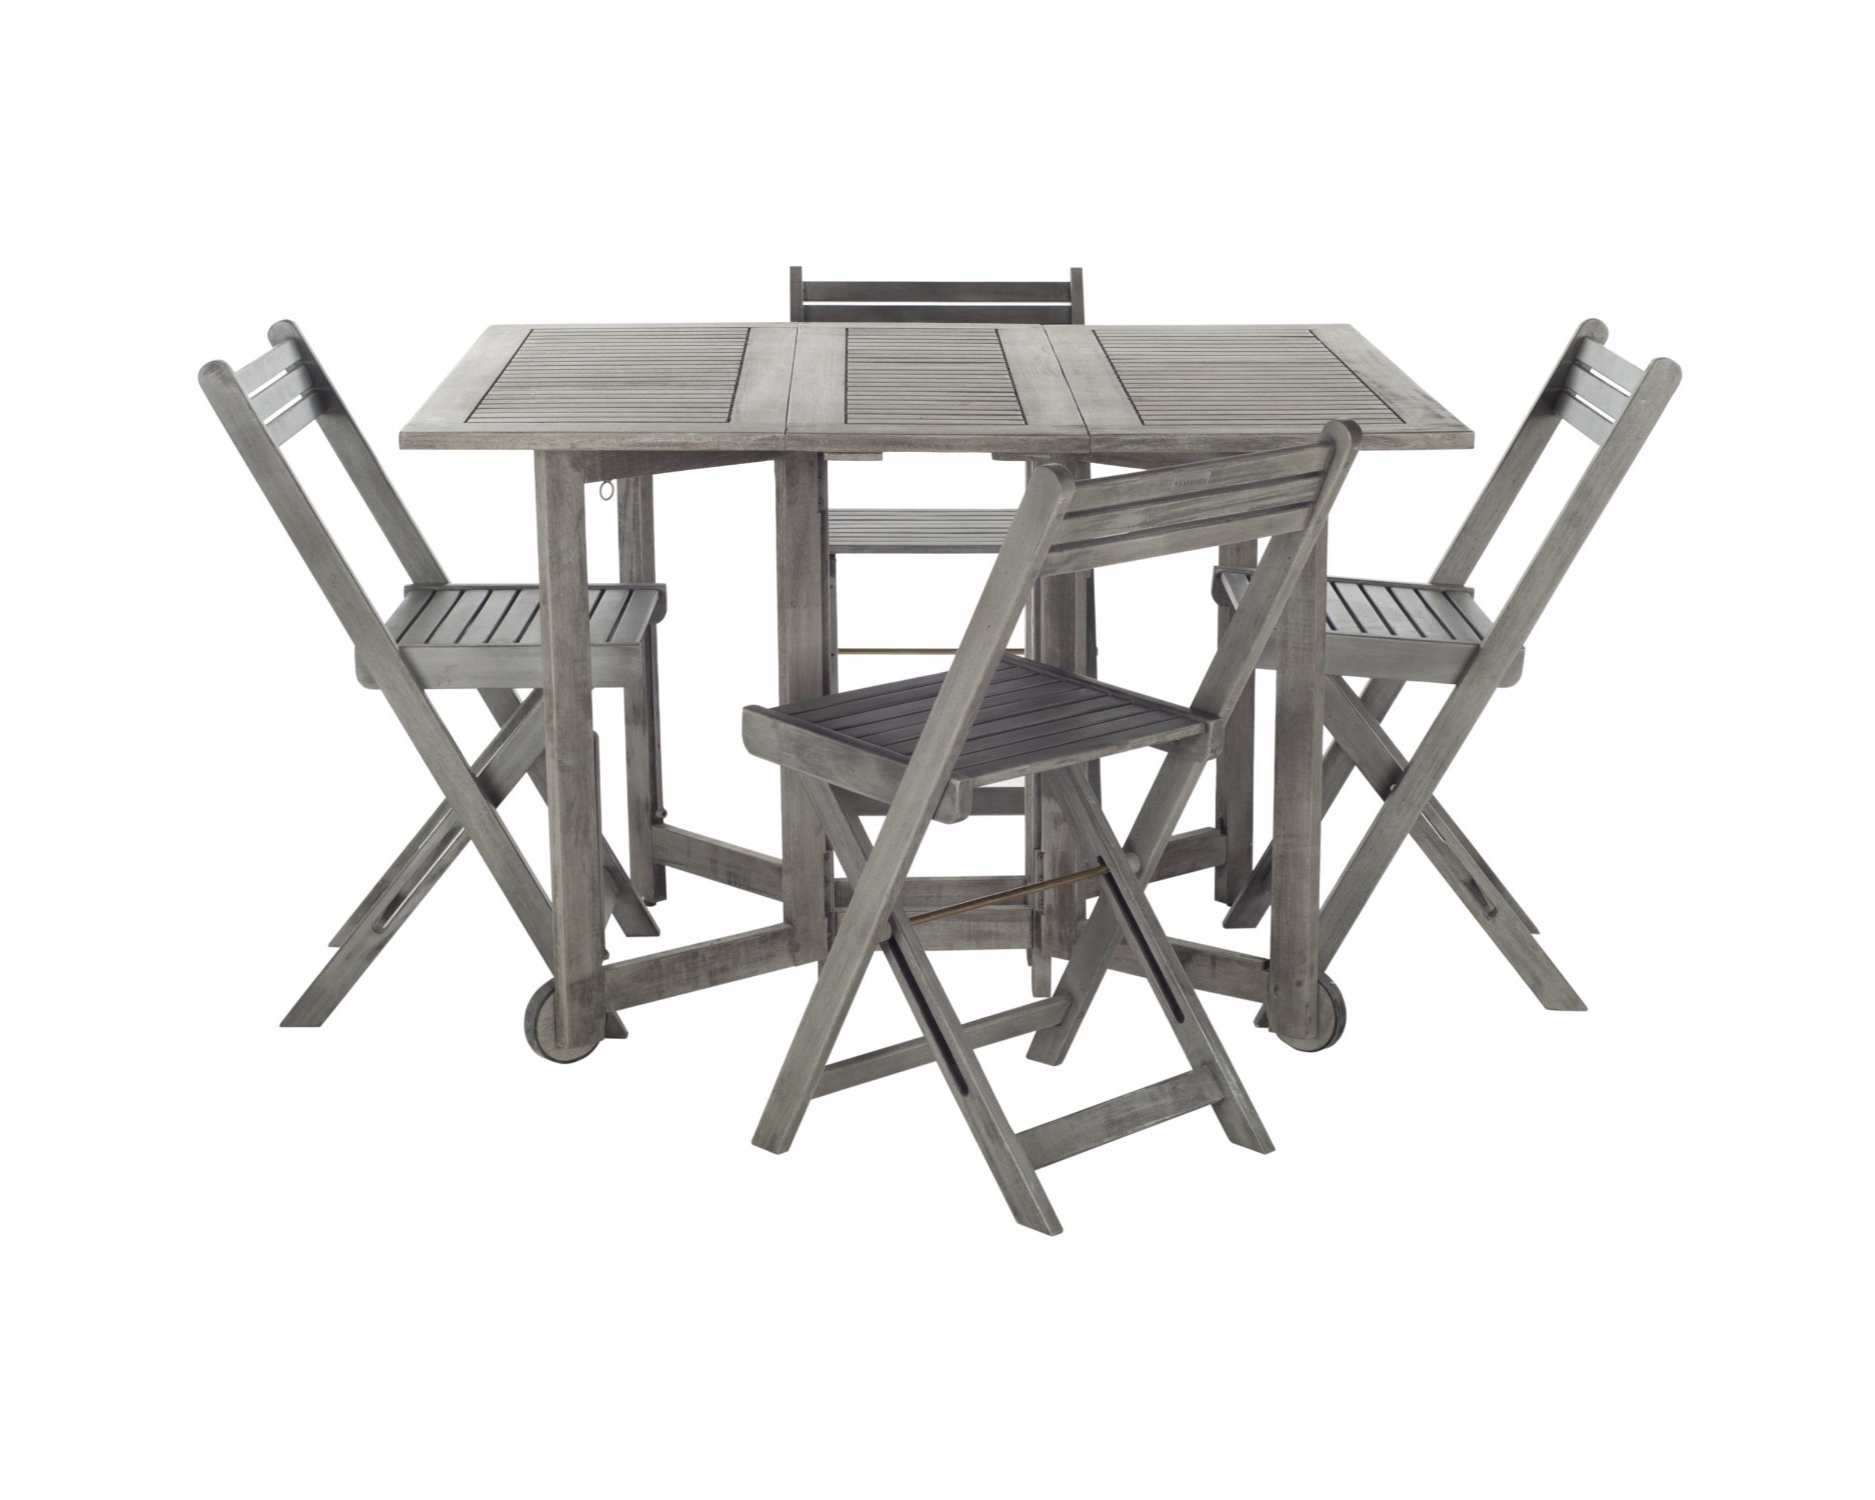 Safavieh Arvin Wood 5 Piece Folding Outdoor Dining Room Set by Safavieh